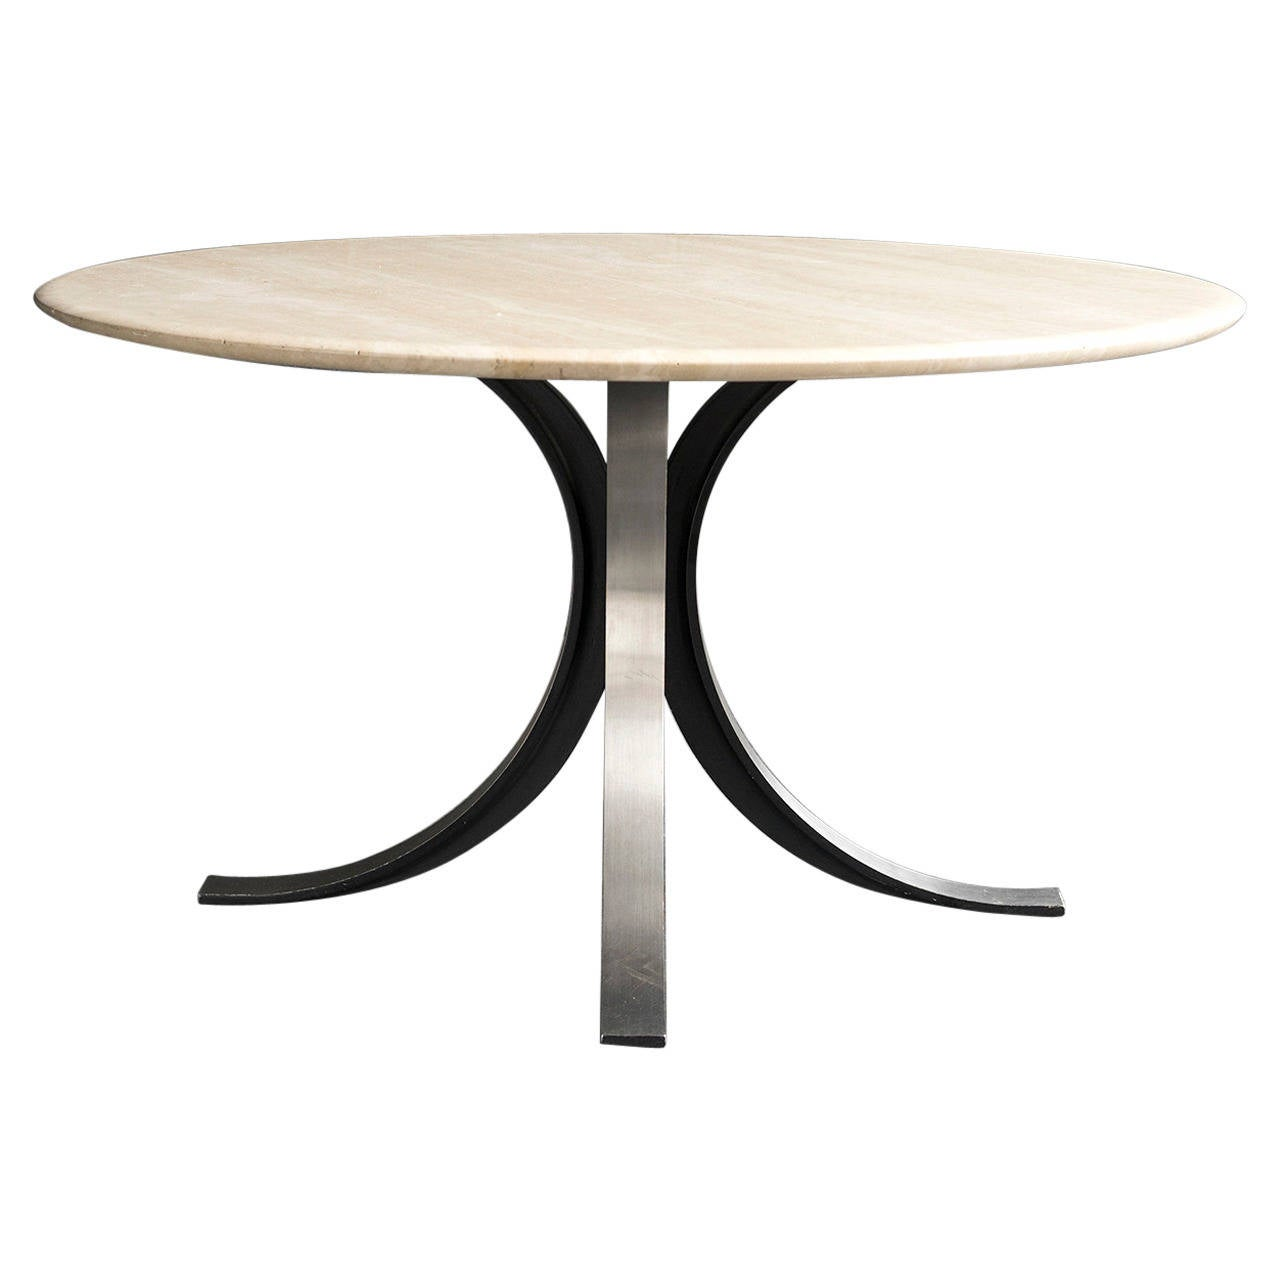 Dining or Center Table by Osvaldo Borsani and Eugenio Gerli